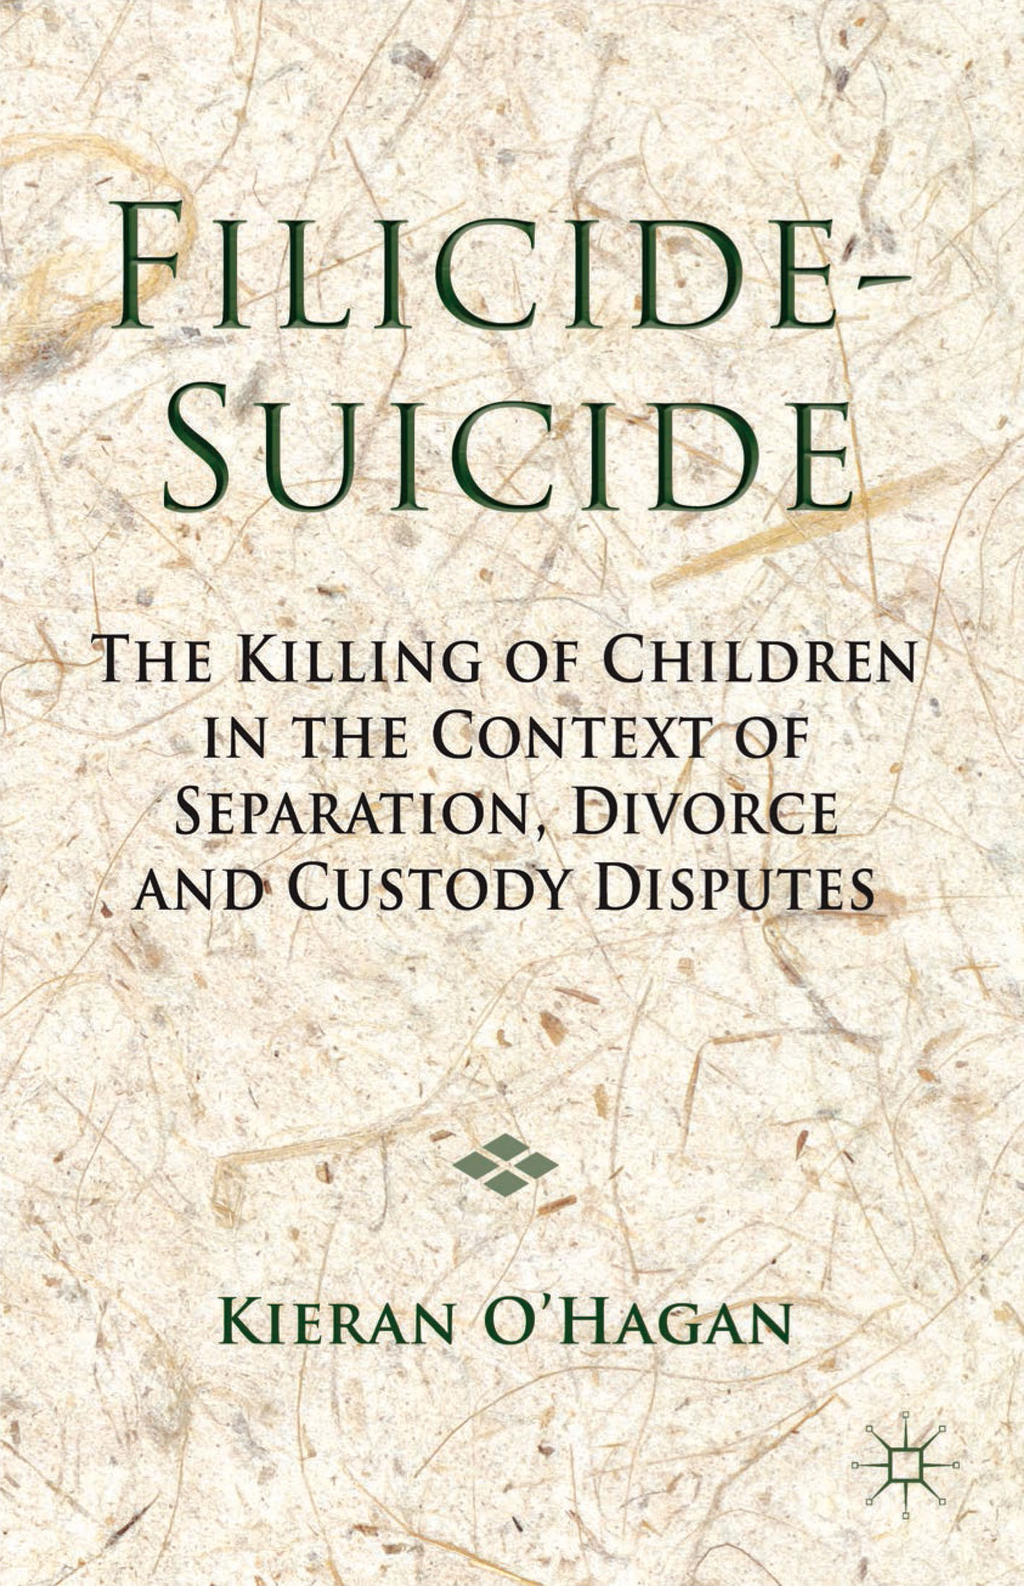 Filicide-Suicide The Killing of Children in the Context of Separation,  Divorce and Custody Disputes